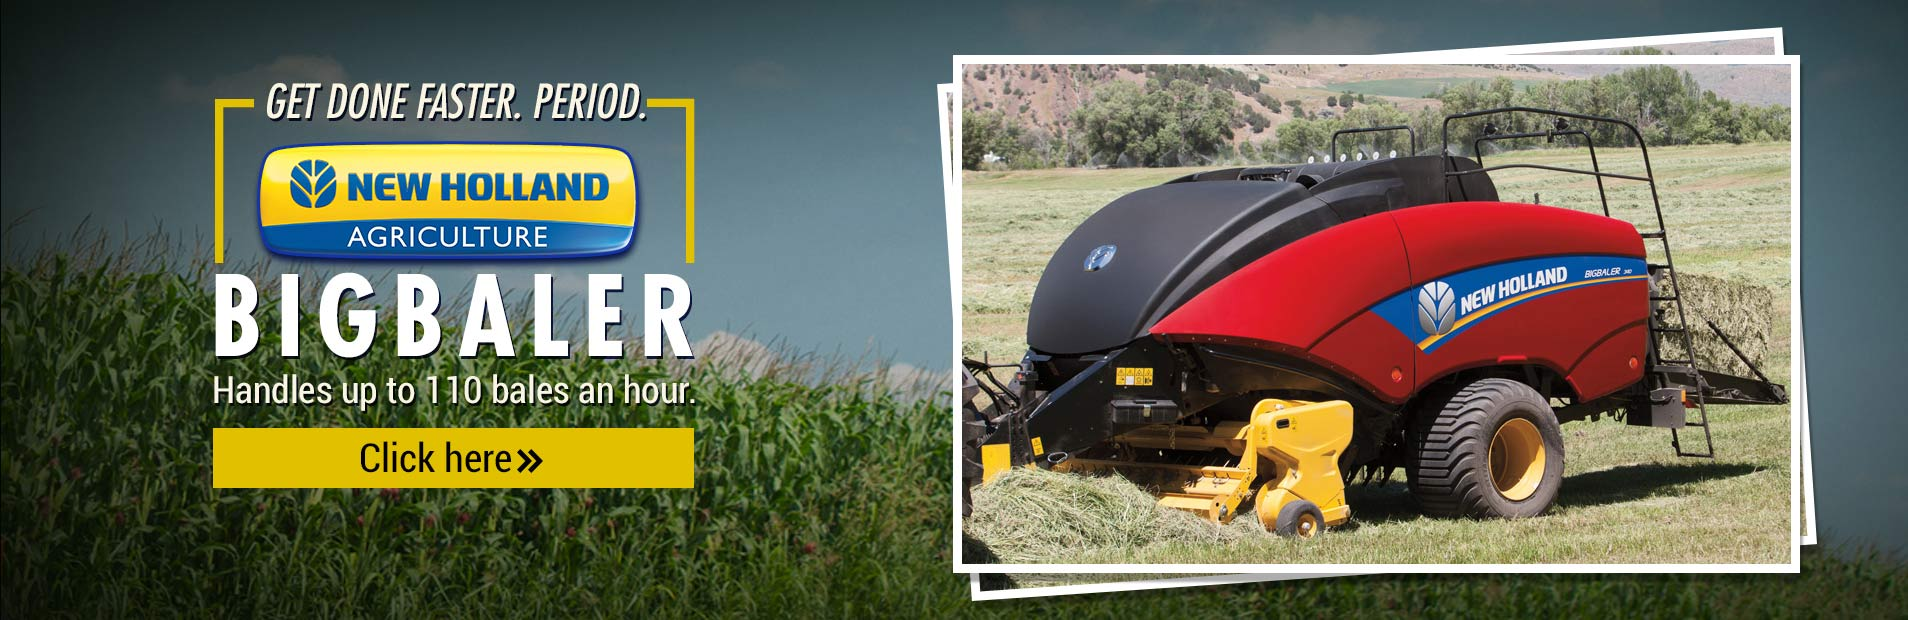 Get done faster with the New Holland BigBaler! Click here for more information.